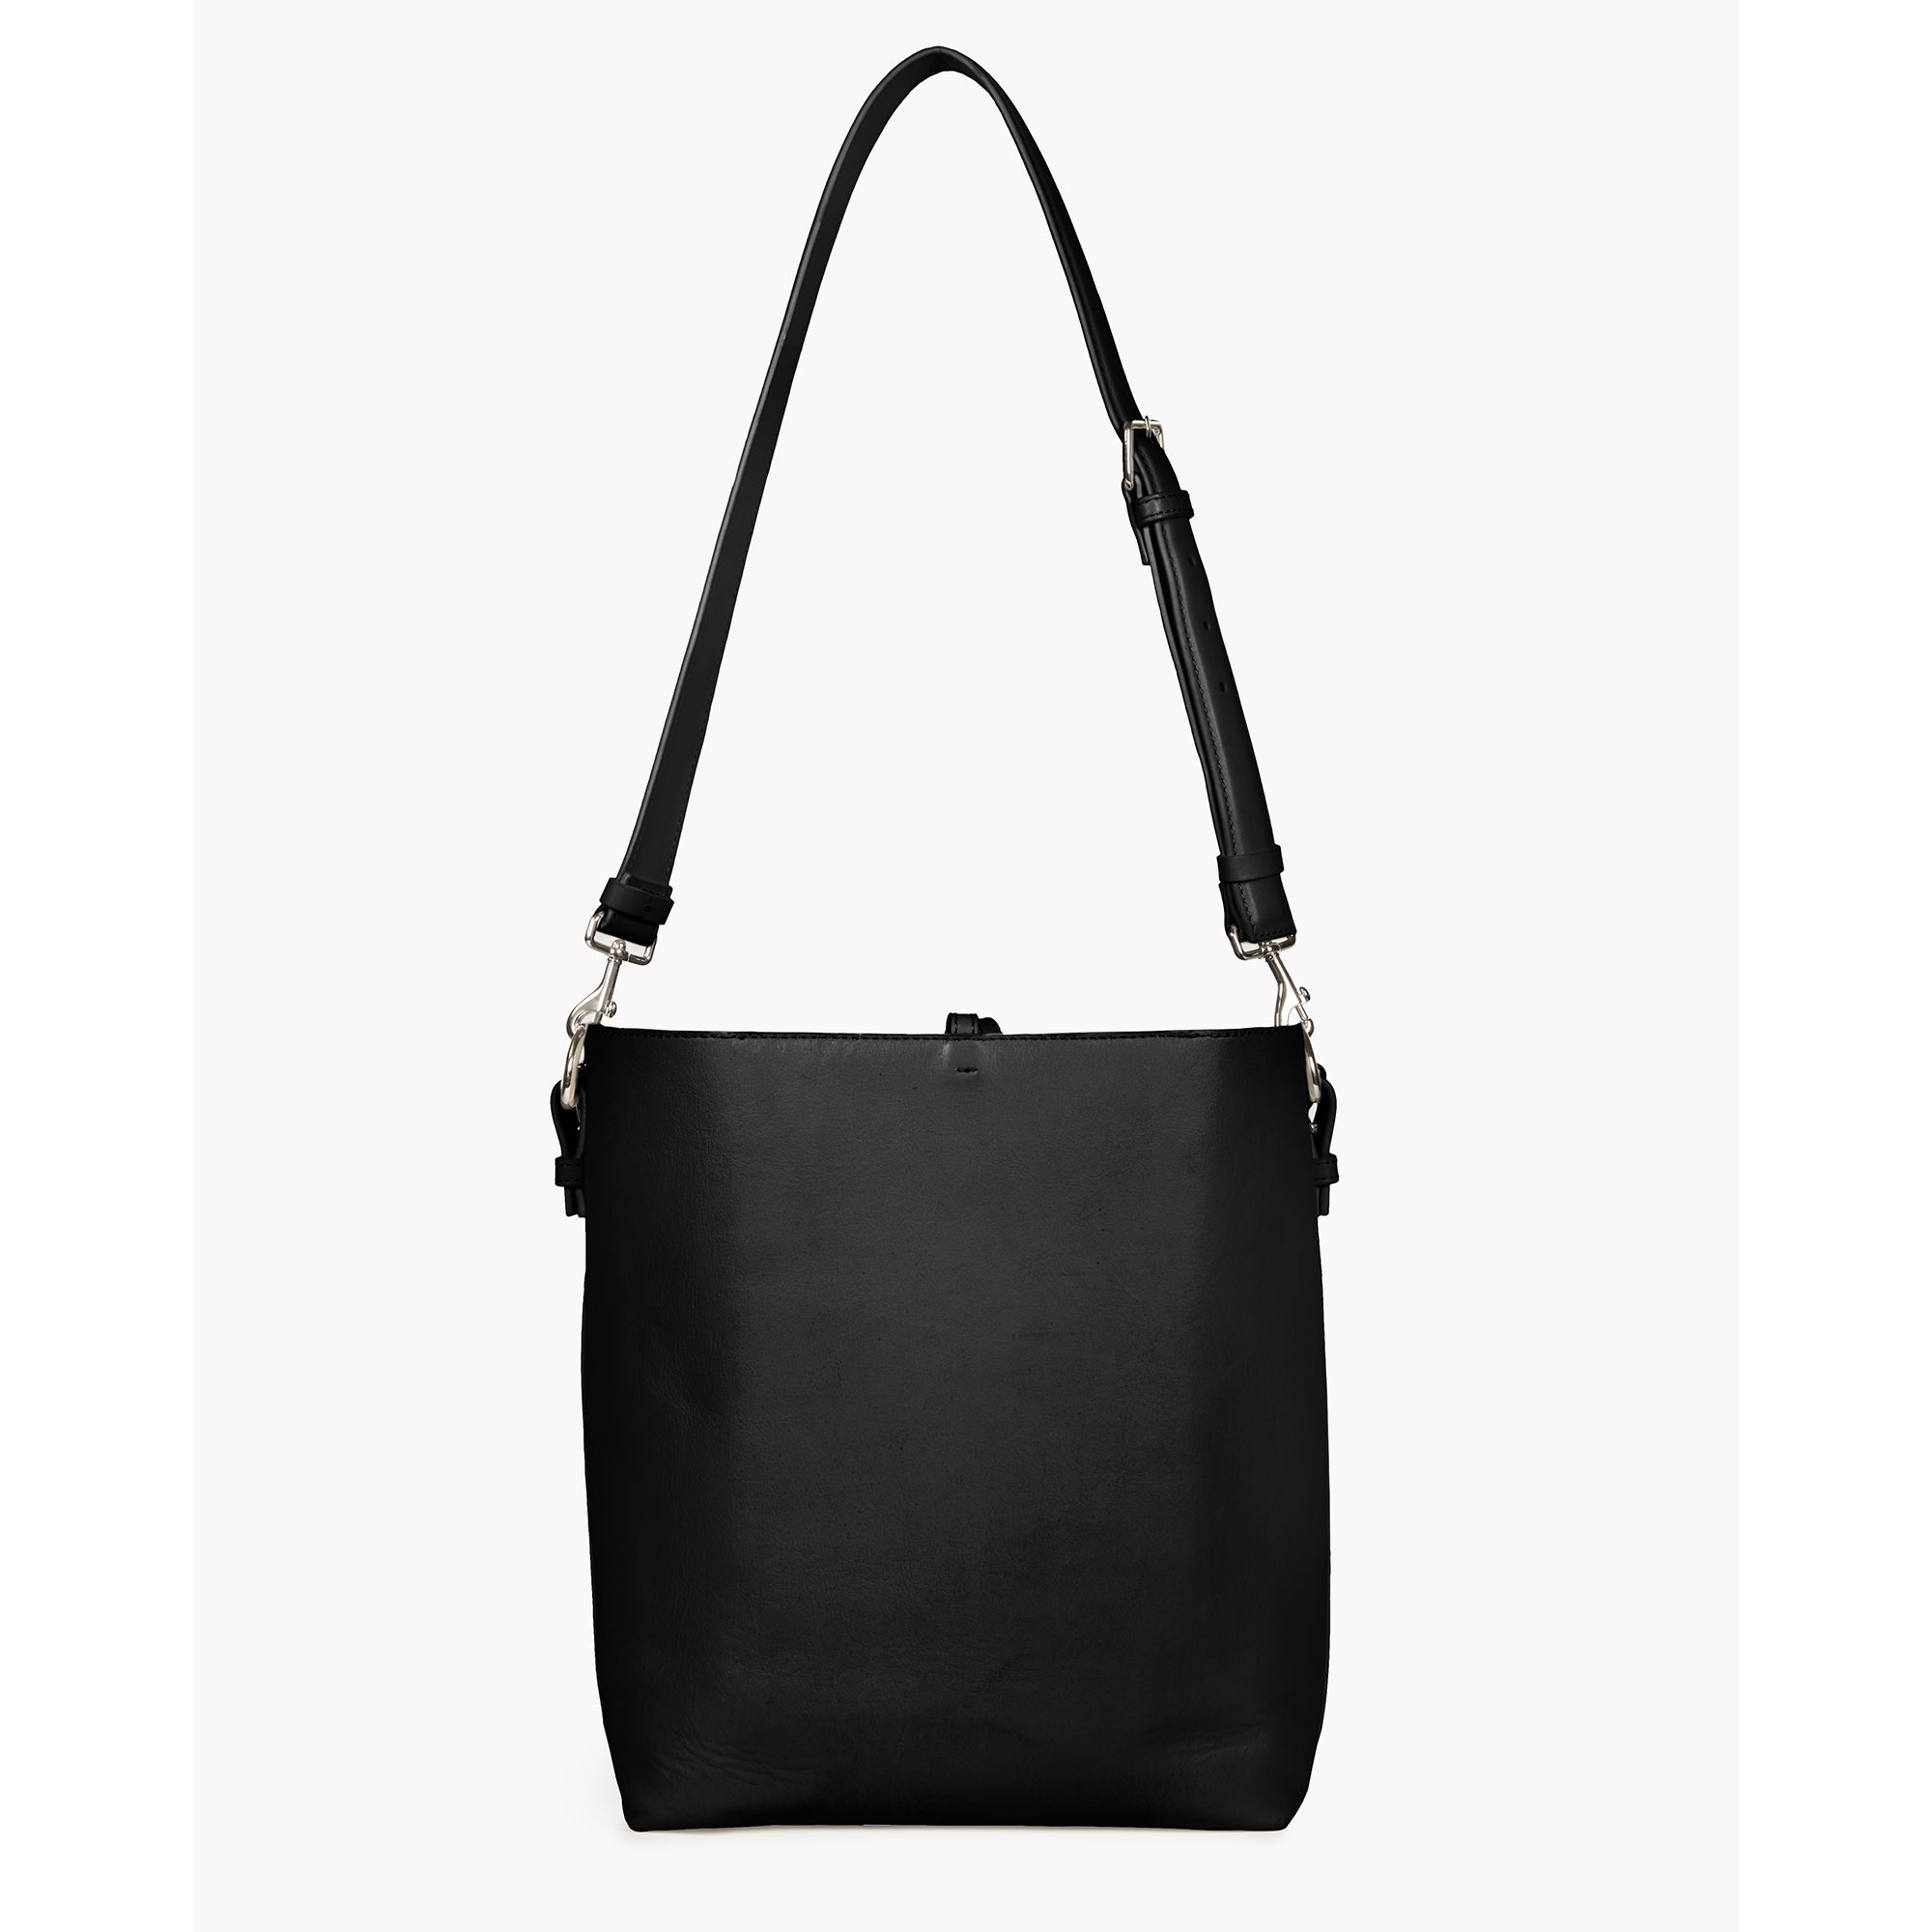 846d343eda1 Lyst - Theory Small Bucket Bag In Linden Leather in Black